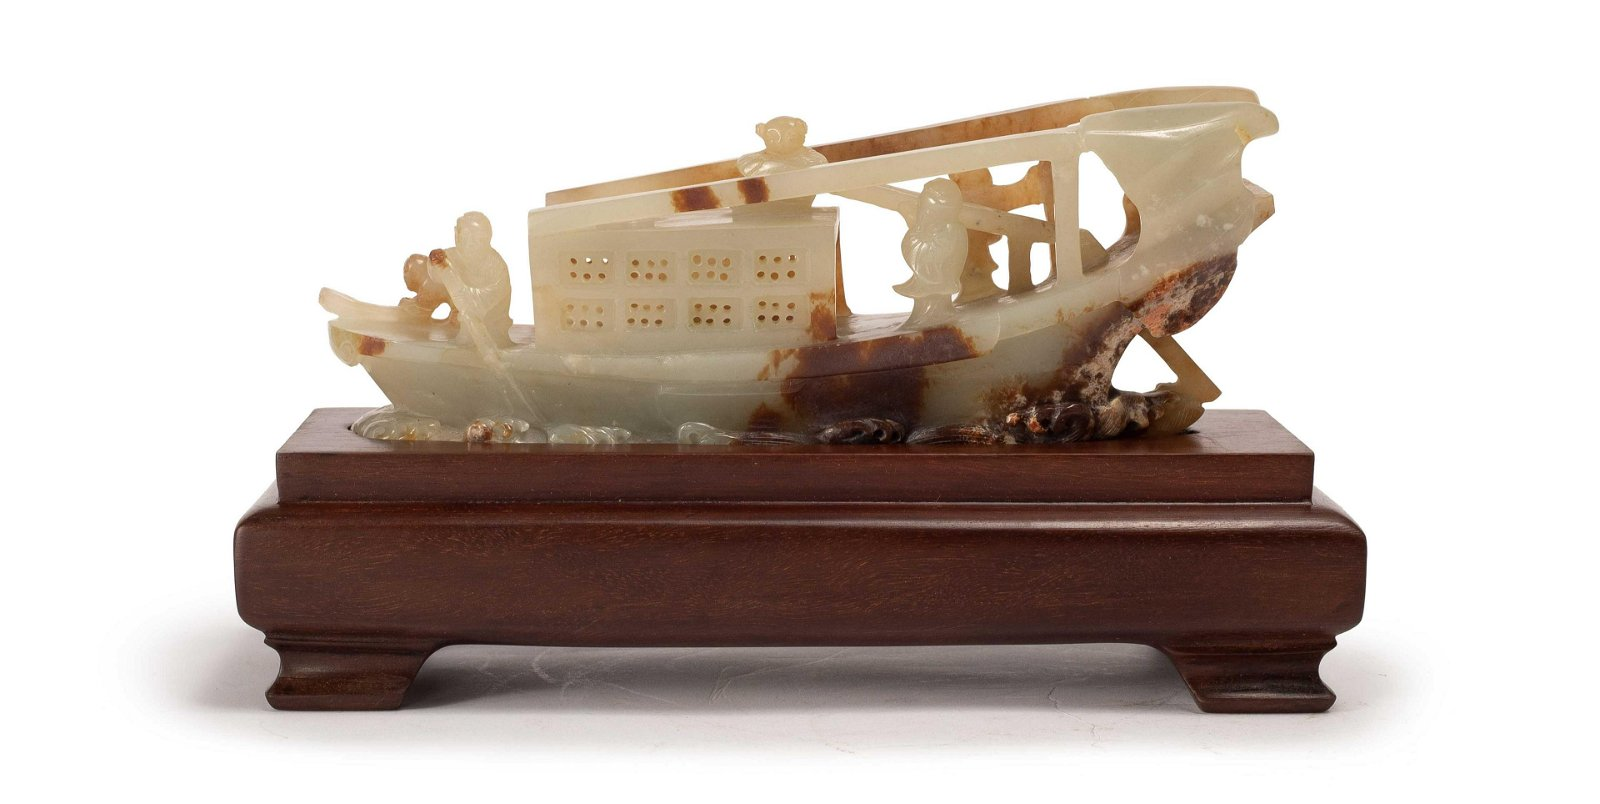 A FINE WHITE JADE DECORATION, QING DYNASTY